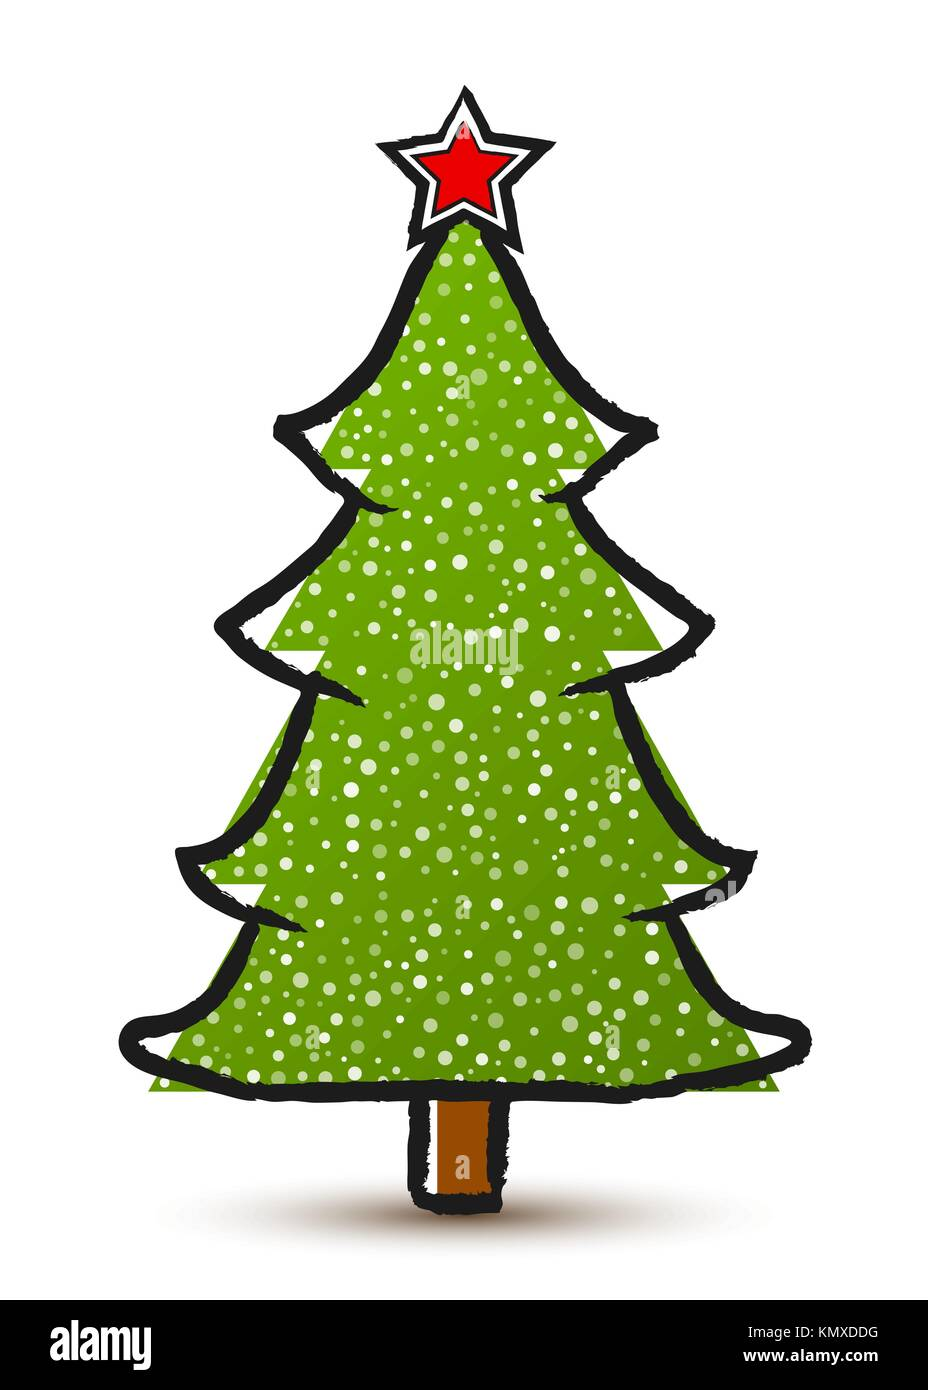 Abstract Christmas Tree Simple Drawing Stock Photos & Abstract ...